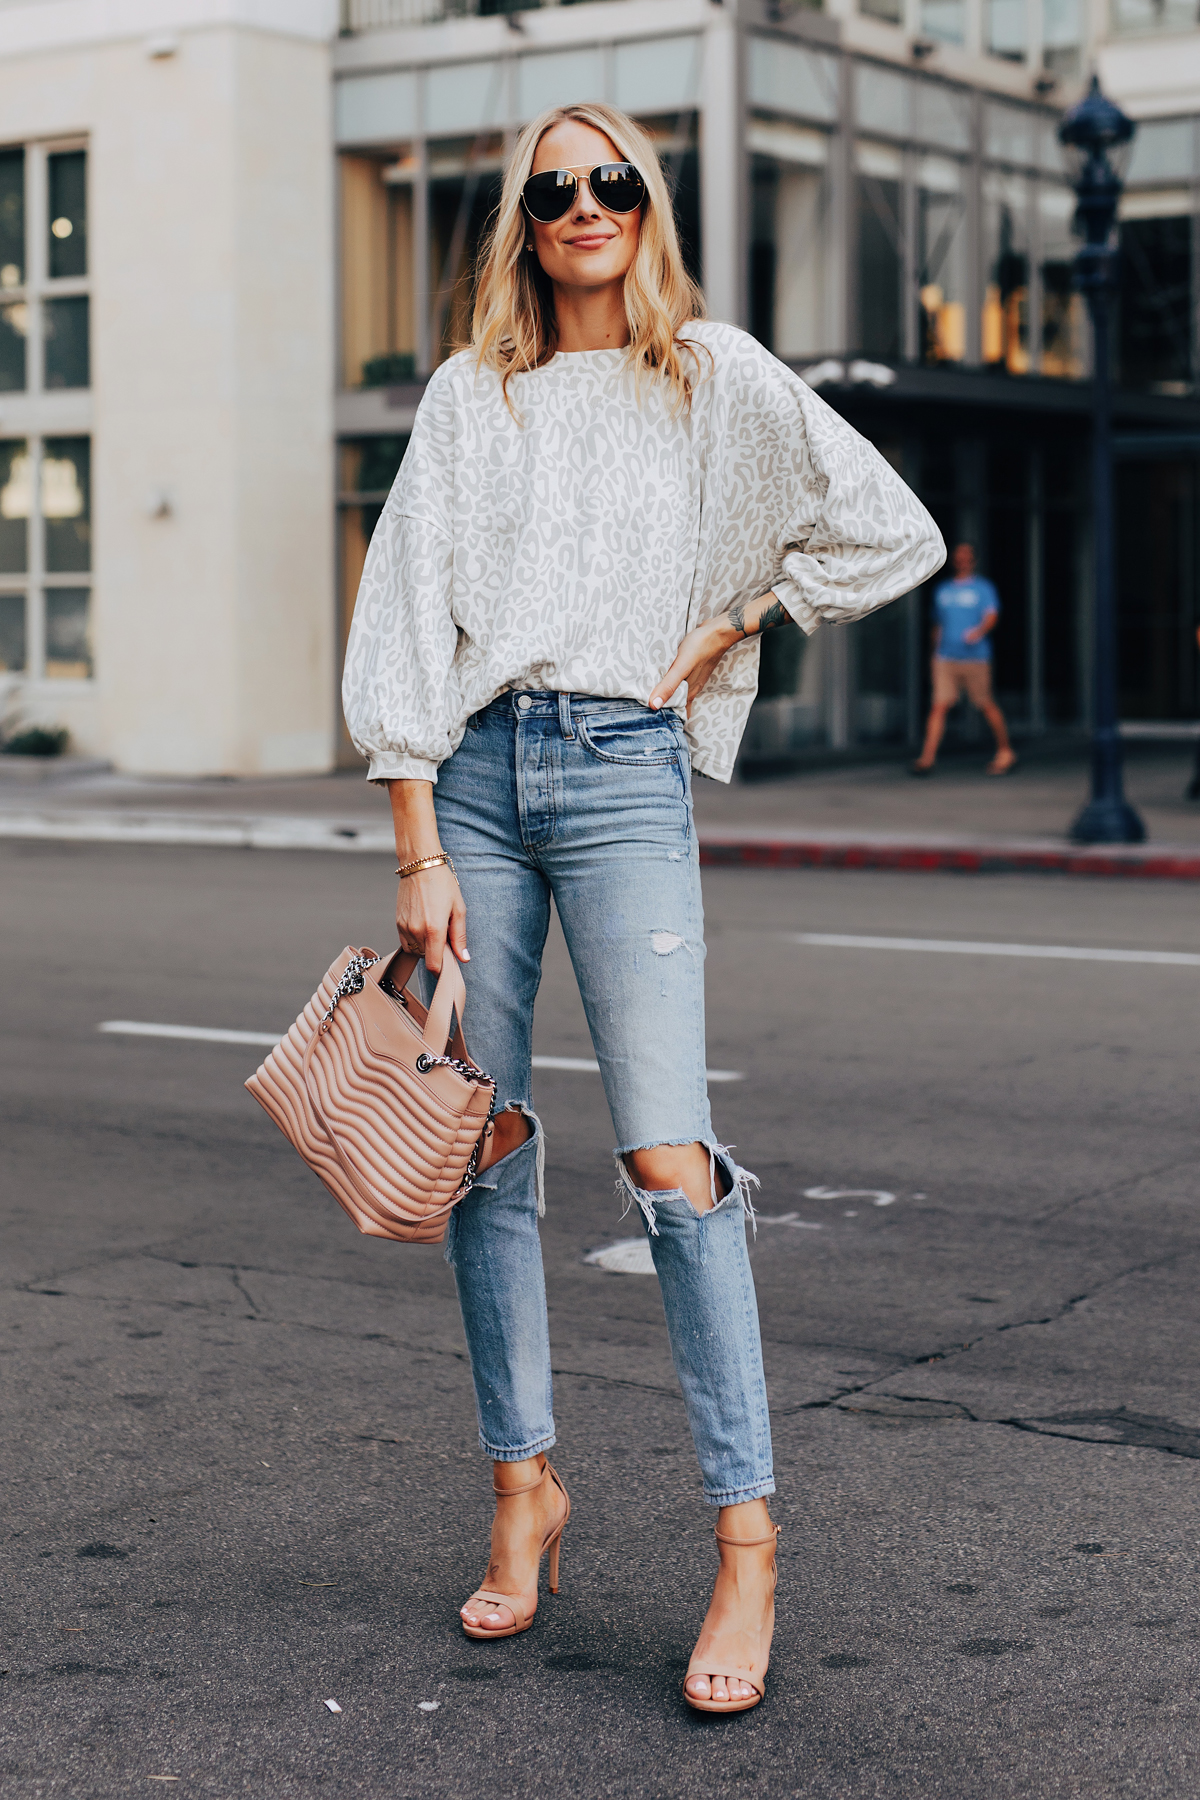 Fashion Jackson Wearing Rebecca Minkoff Leopard Sweatshirt Ripped Jeans Tan Ankle Strap Heeled Sandals Aviator Sunglasses Rebecca Minkoff MAB Quilted Satchel Blush